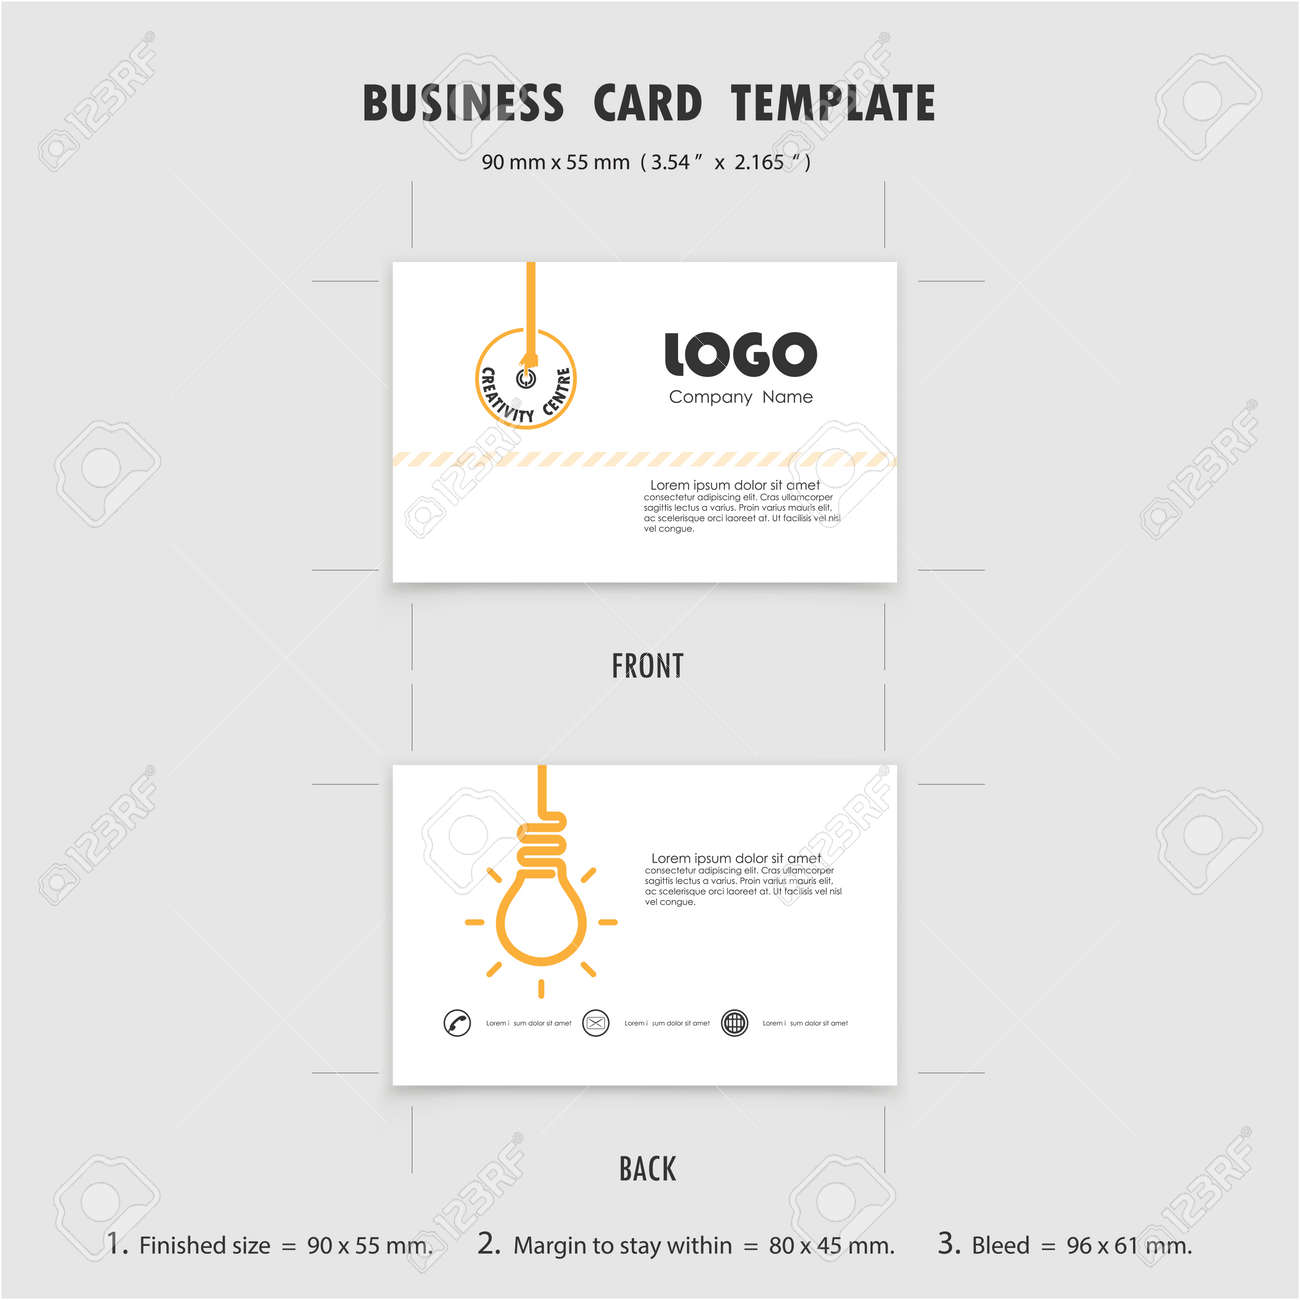 Abstract creative business cards design template size 90mmx55mm abstract creative business cards design template size 90mmx55mm 354 in x 2165 in reheart Gallery